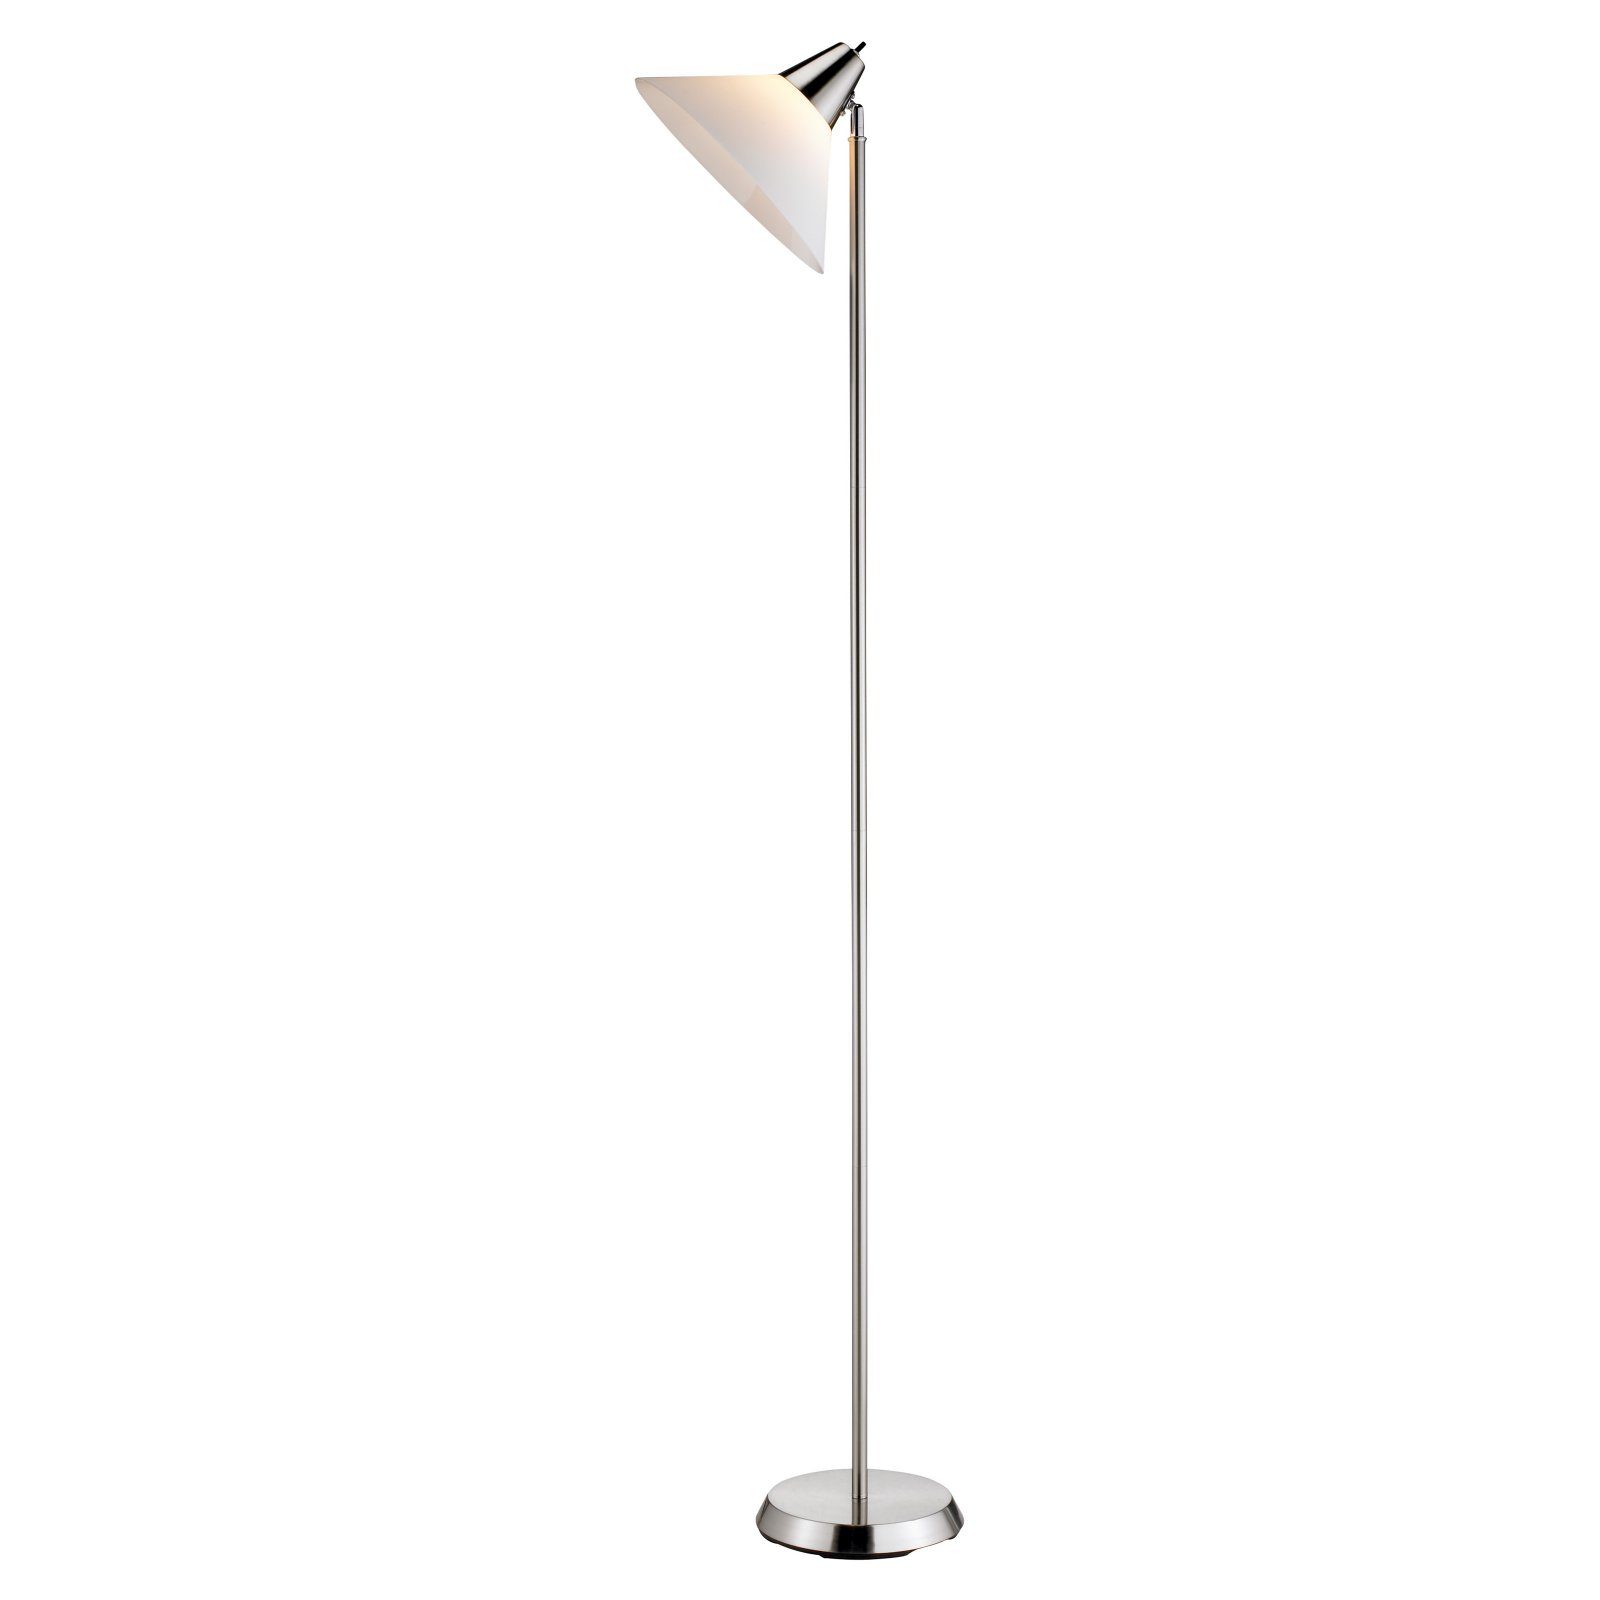 Adesso Swivel Floor Lamp, Satin Steel Finish by Generic